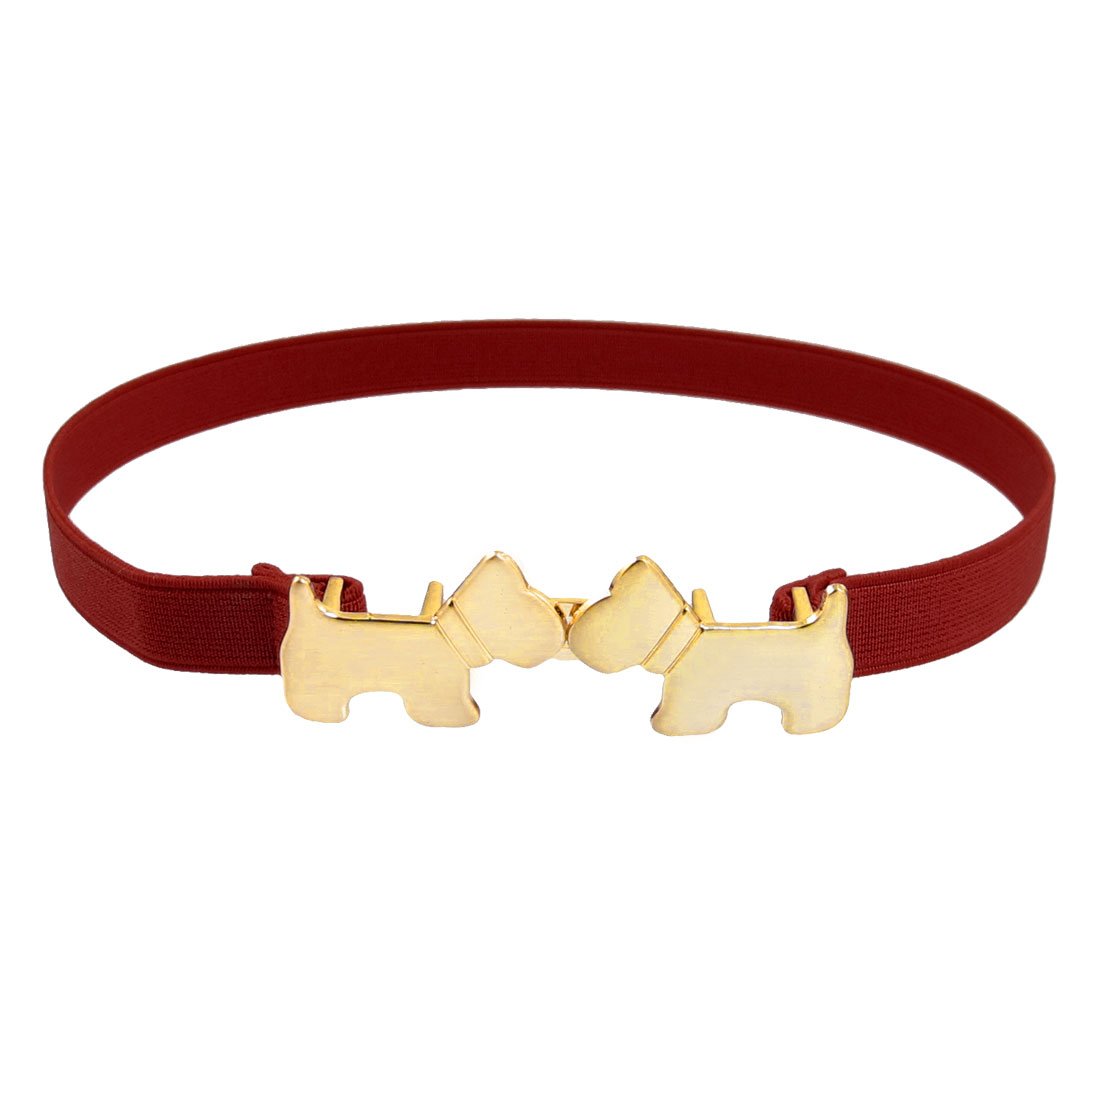 Ladies Metal Dual Puppy Shaped Interlocking Buckle Elastic Waist Belt Red